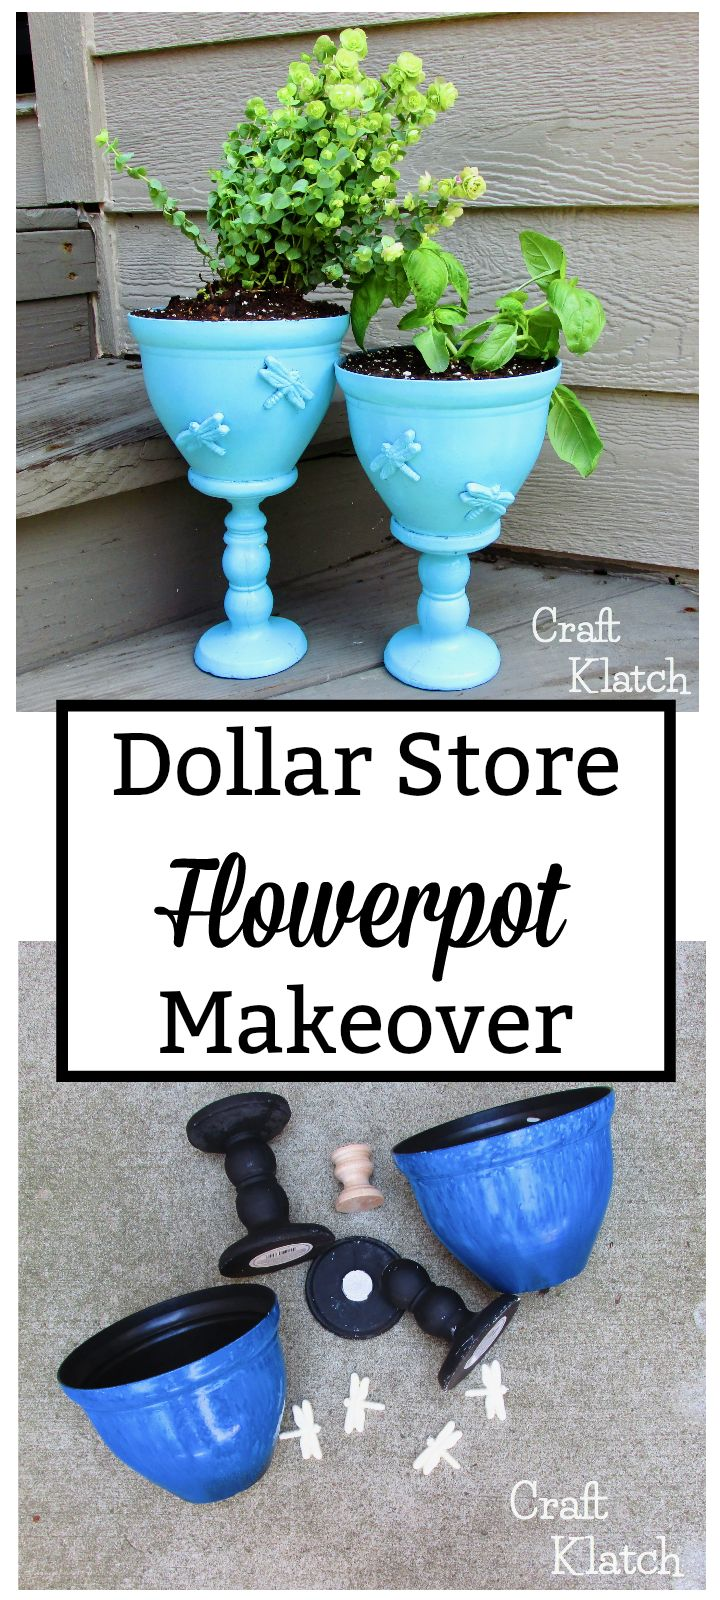 This is a great dollar store craft to tackle this weekend! Completely makeover a flowerpots from Dollar Tree and turn them into styles pots for your herb garden! It's easy! #howto #diy #diys #craft #crafts #crafting #howto #handmade #homedecor #decor #makeover #makeovers #redo #repurpose #reuse #recycle #recycling #upcycle #upcycling #unique #landscape #landscaping #garden #gardening #gardenideas #gardendecor